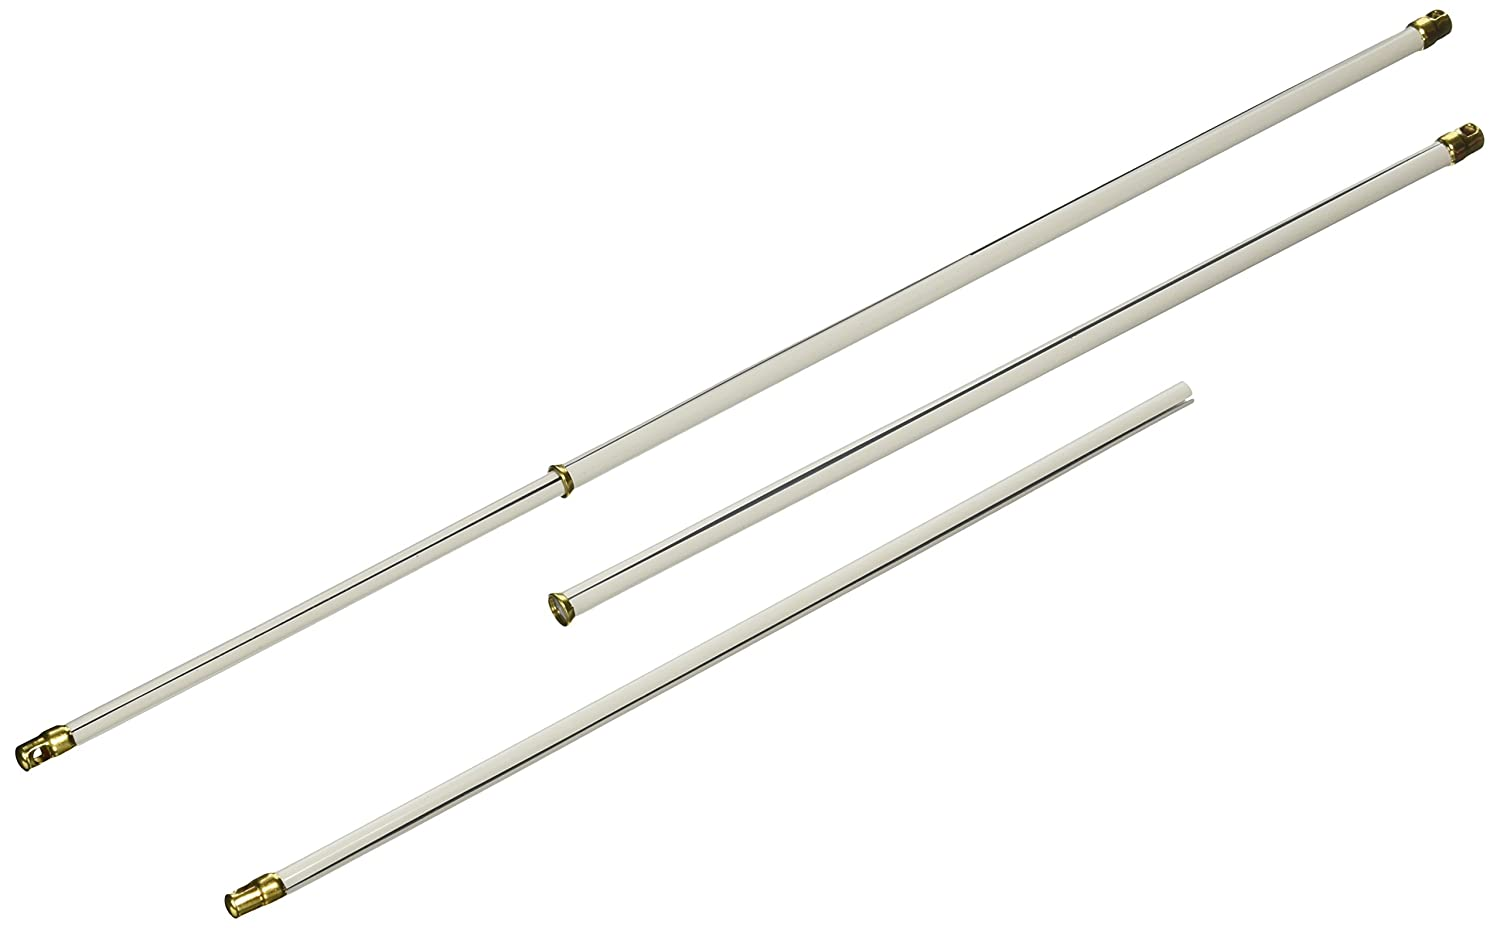 Kenney A7004213417 Sash Rod, 5/16-Inch Diameter, 12-to-22-Inch Width, White, 2-Pack